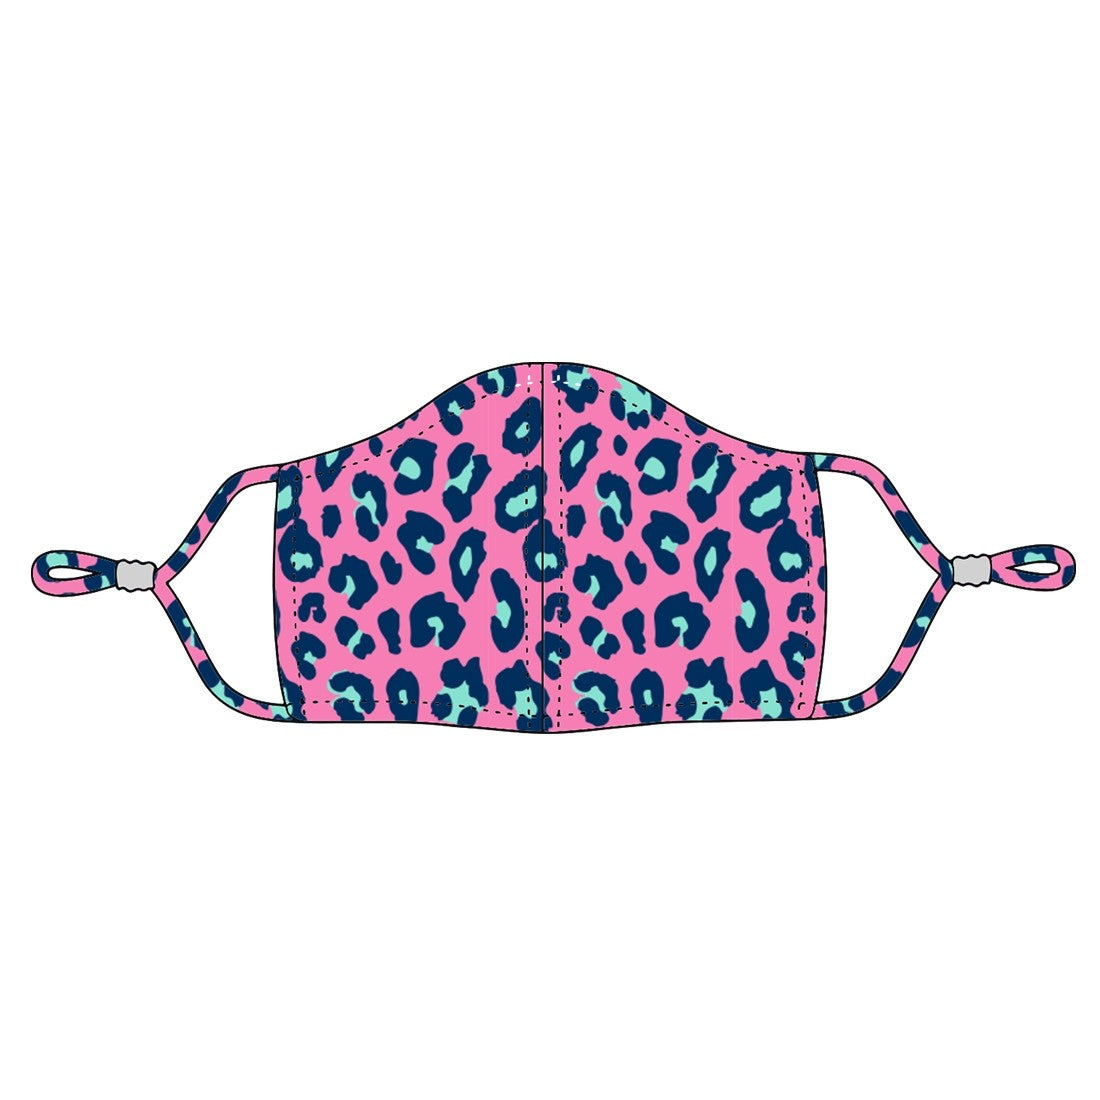 hot pink mask, leopard mask, kids face cover, kids mask